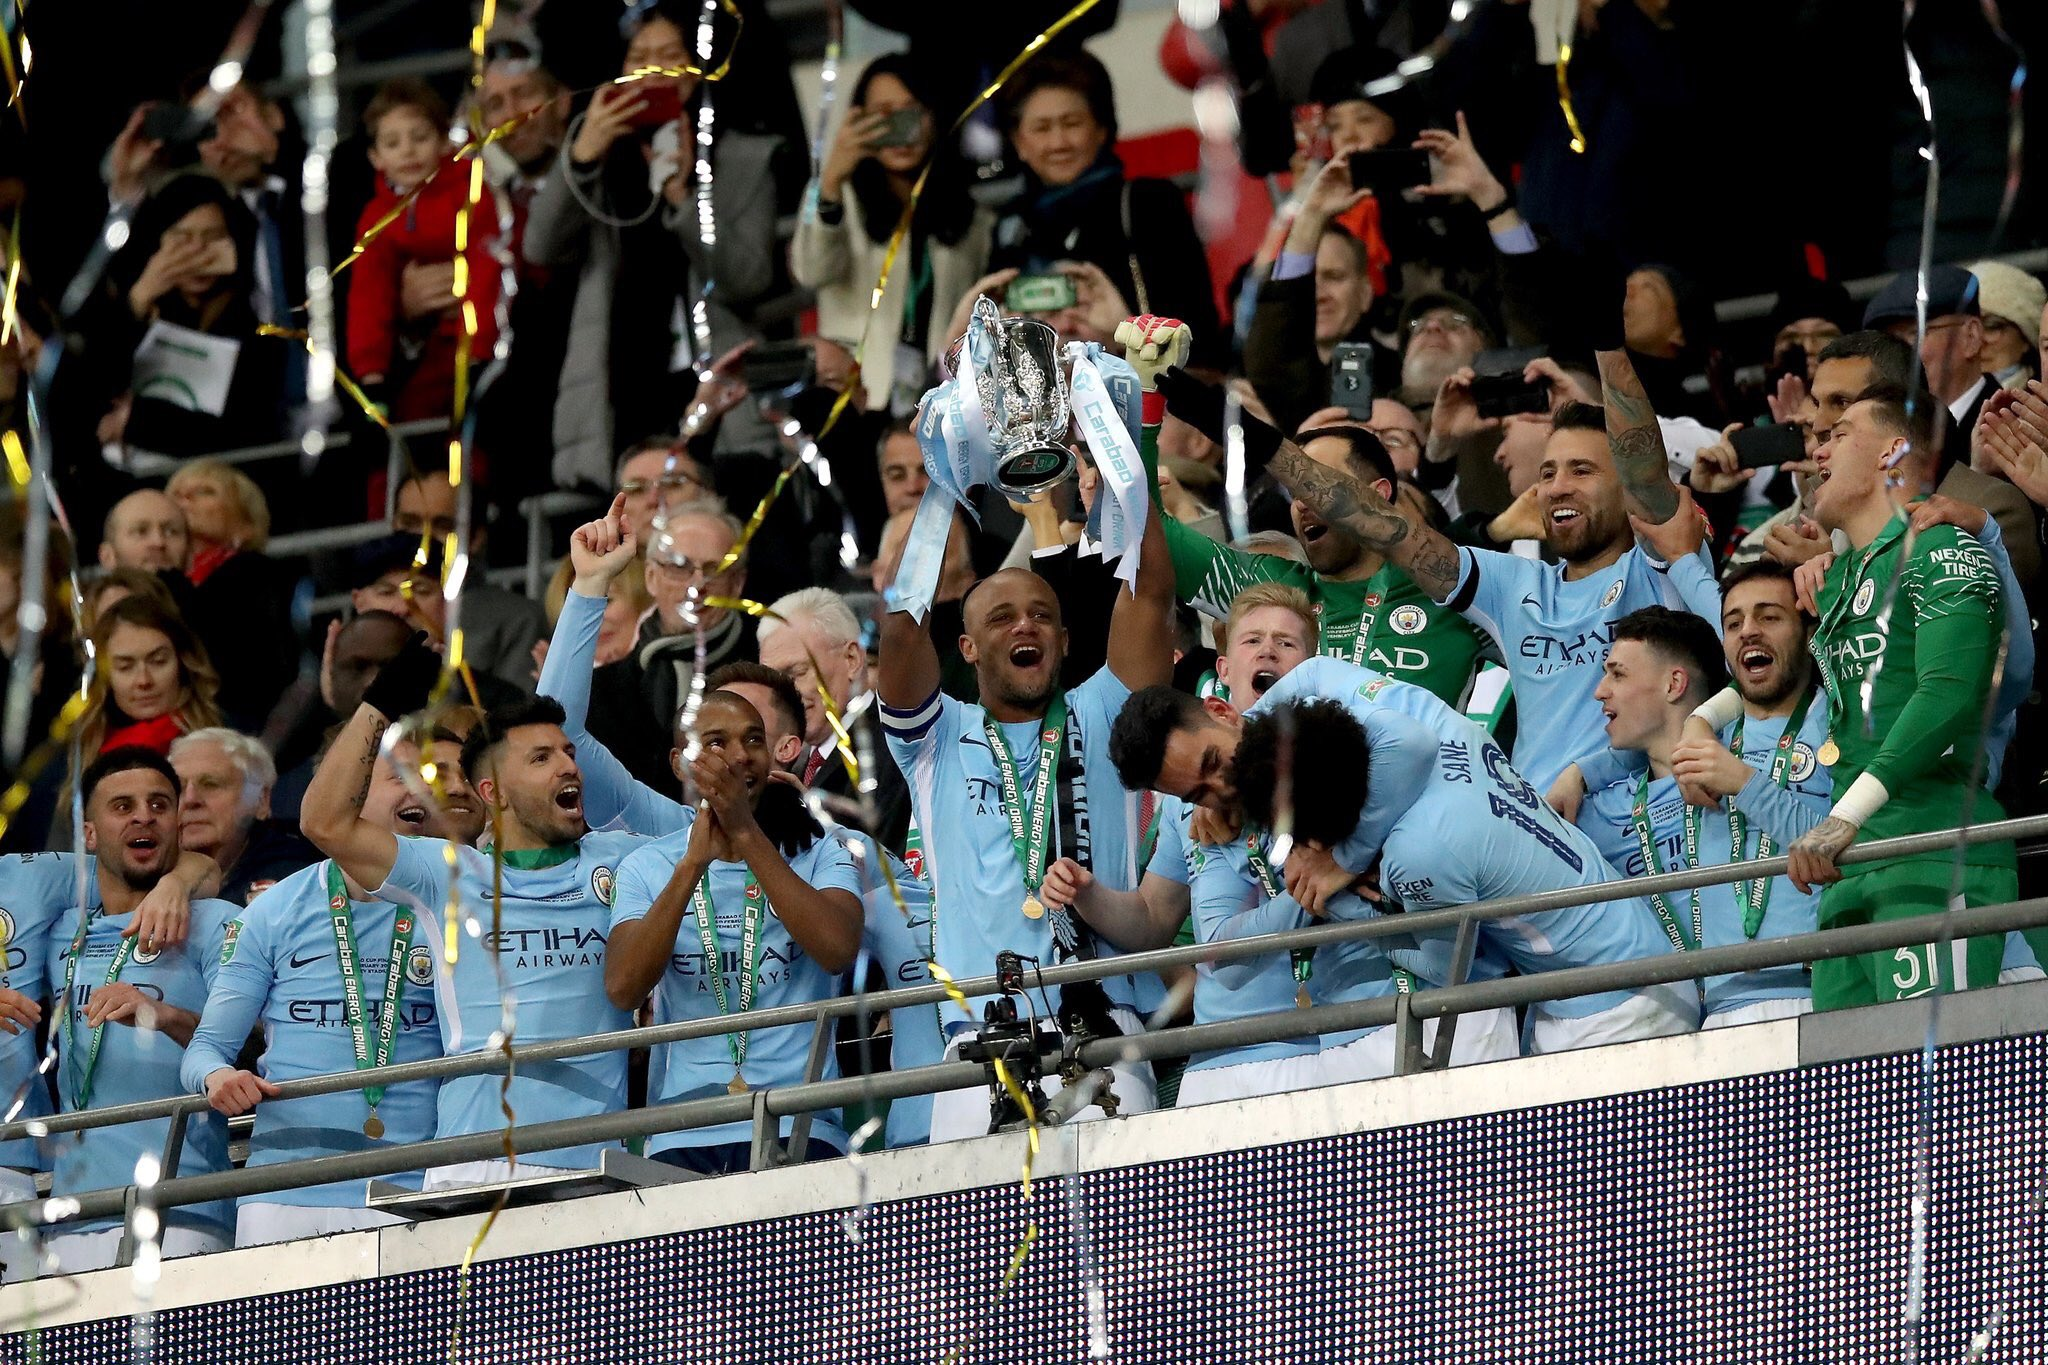 Video: Arsenal vs Manchester City - Carabao Cup Final Trophy Celebration - 25 February 2018